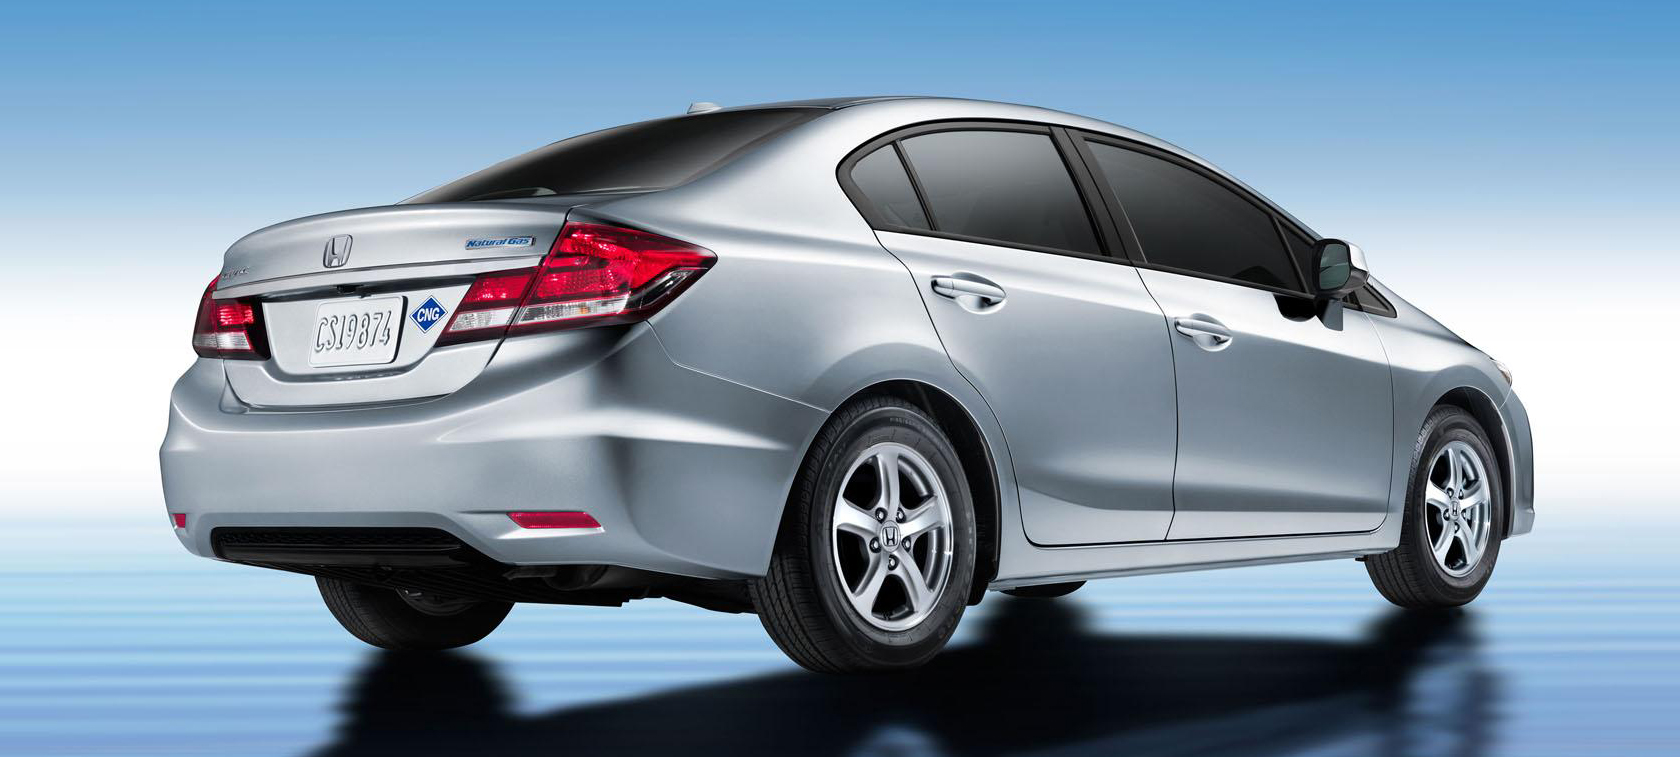 Honda pulls plug on Civic CNG